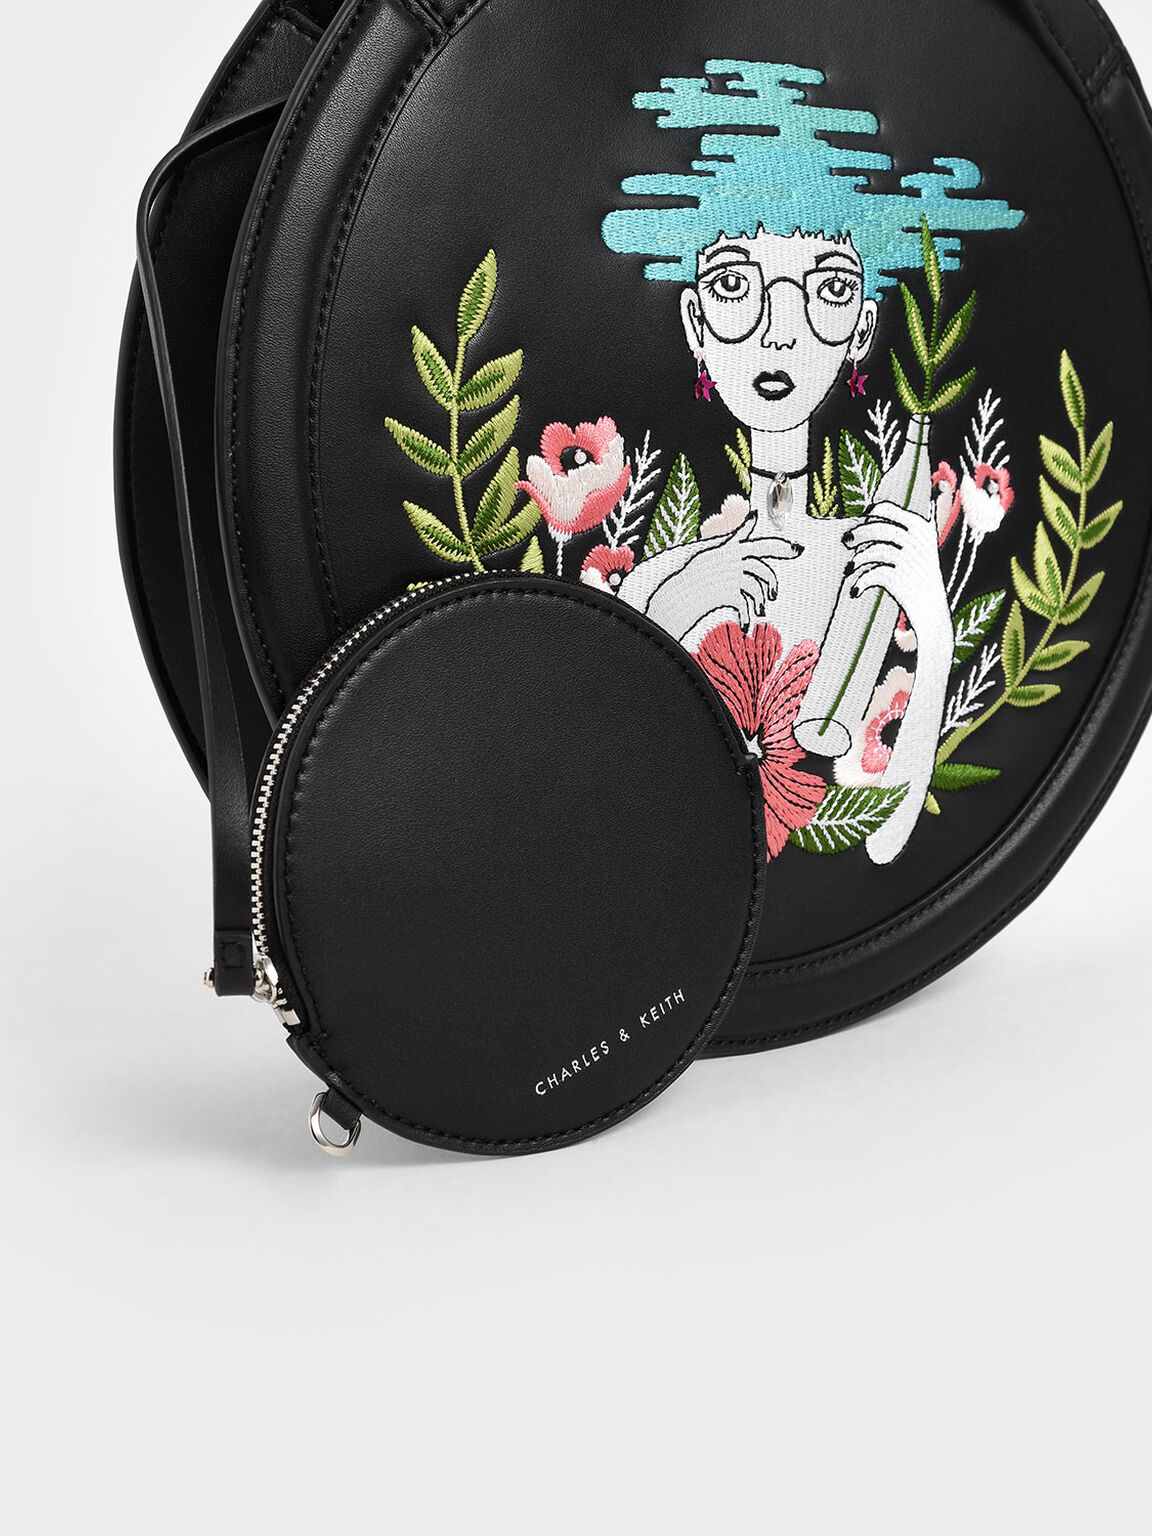 CHARLES & KEITH By Teeteeheehee: Embroidered Round Tote Bag, Black, hi-res